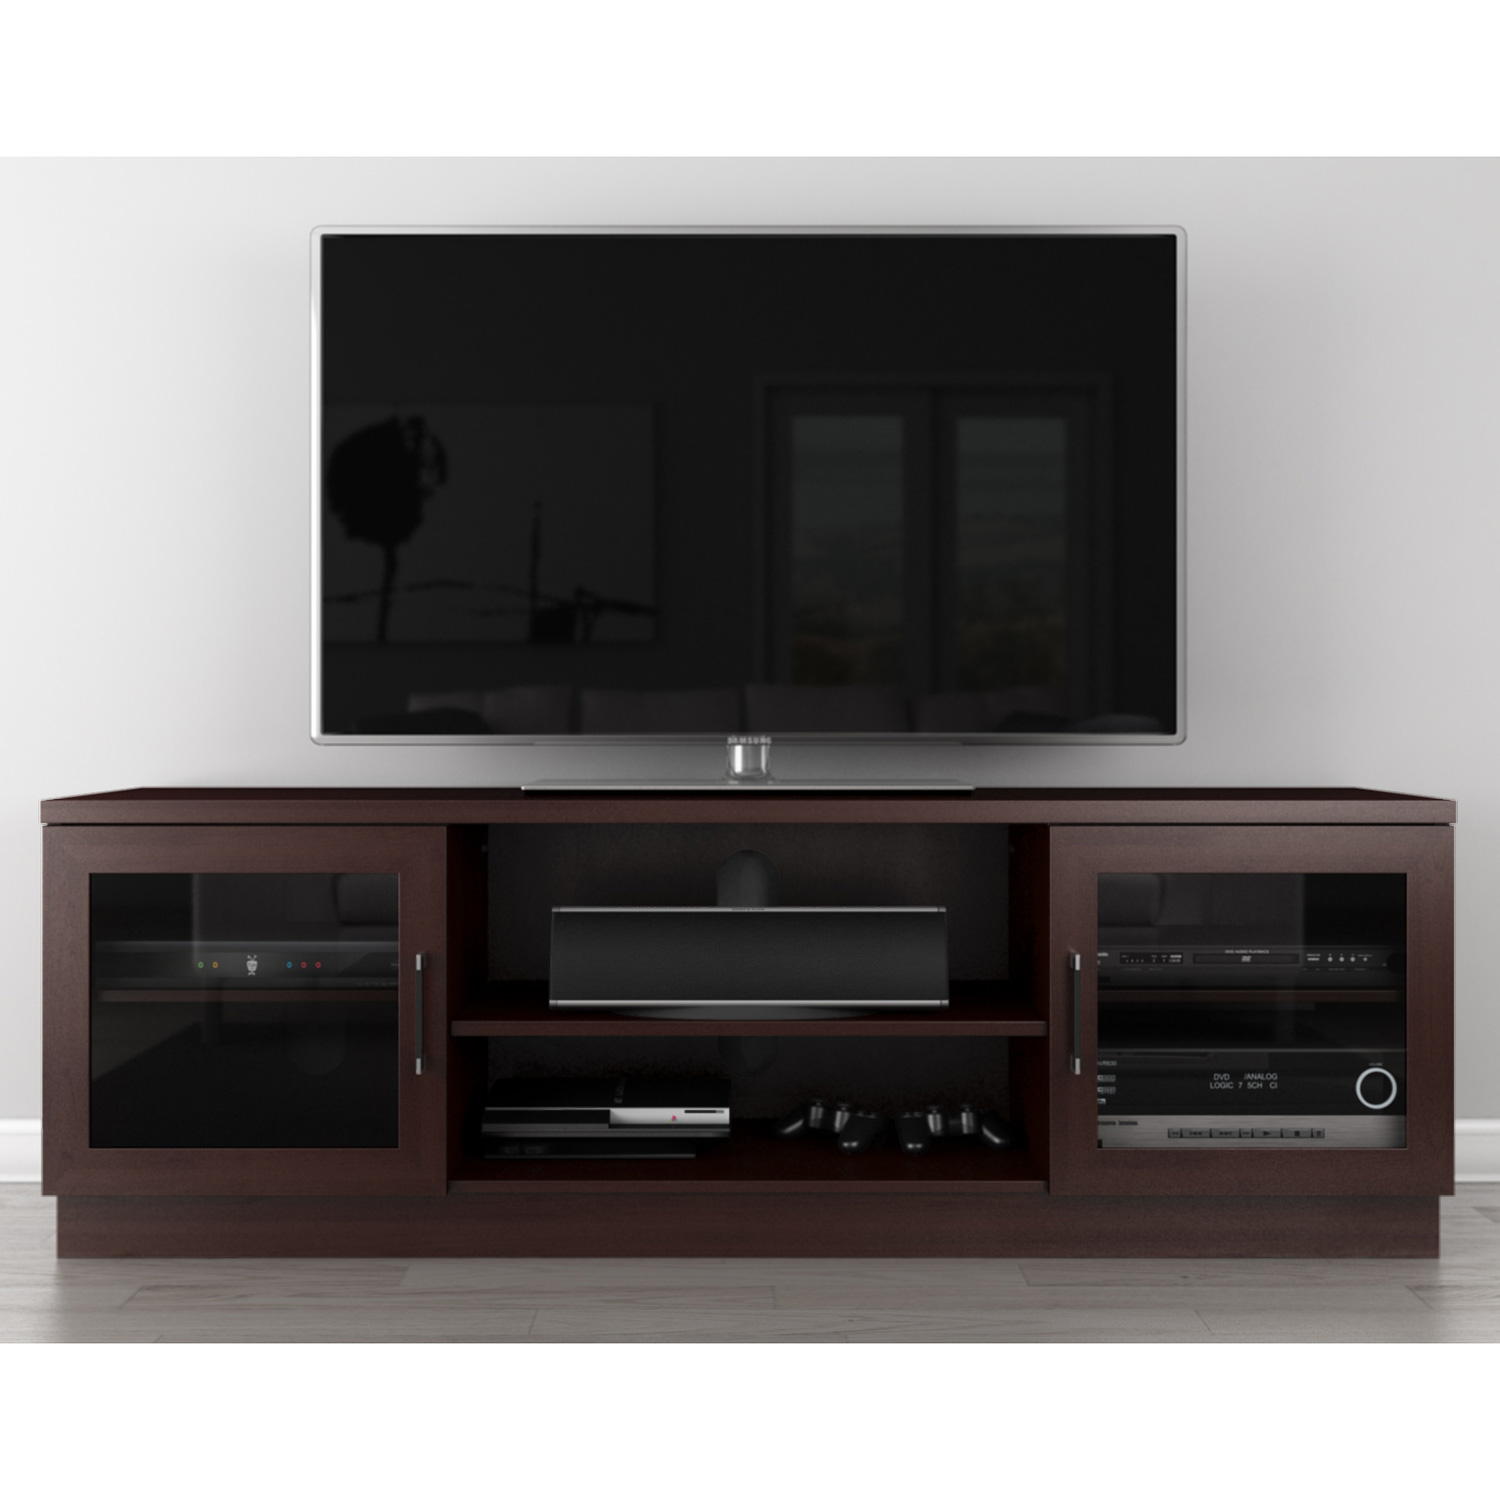 Furnitech Ft70cc W 70 Quot Tv Stand Contemporary Media Cabinet